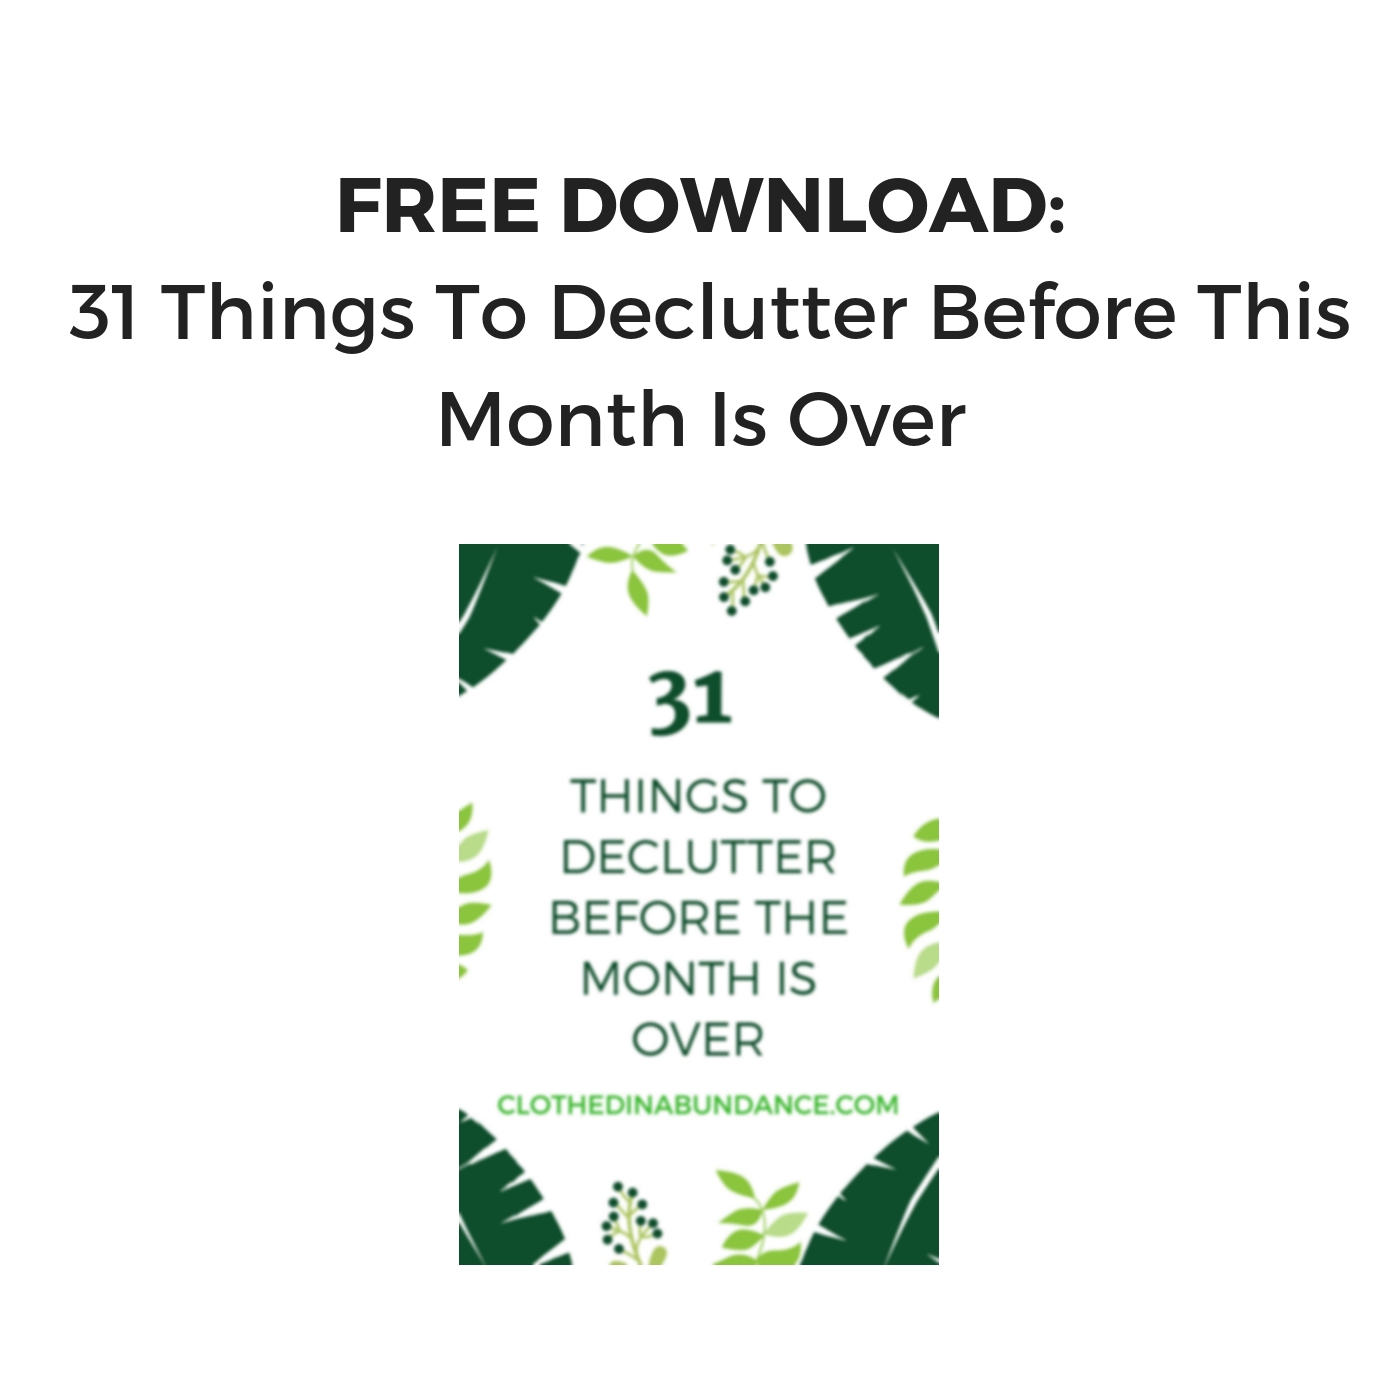 FREE Download 31 Things To Declutter Before This Month Is Over PDF